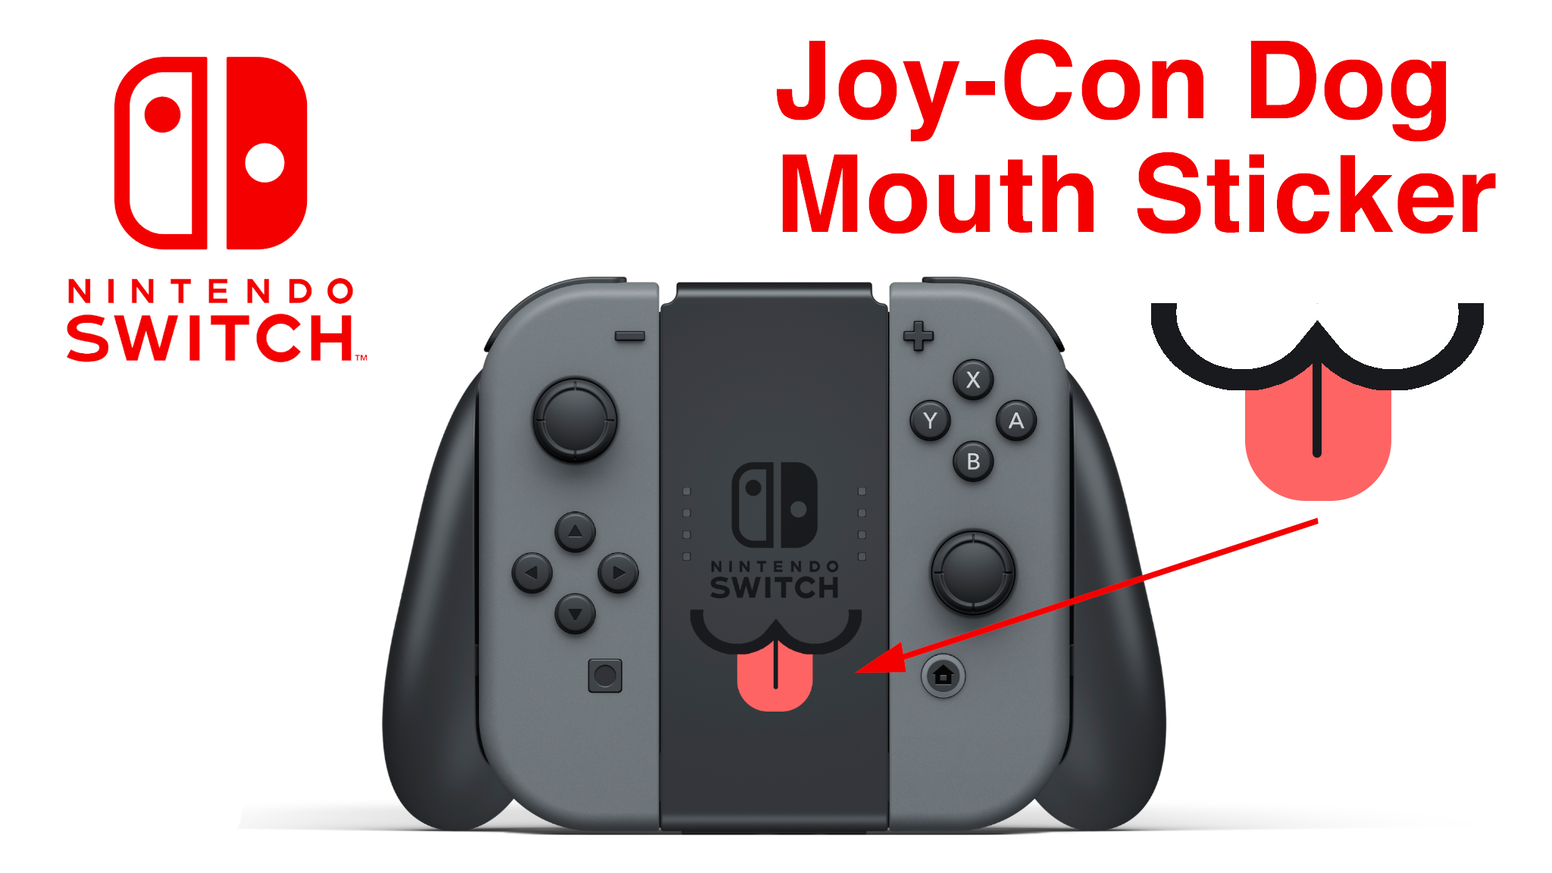 A simple sticker for the Nintendo Switch Joy-Con to make it look even more like a derpy dog. After funding we were able to launch a store to continue selling.Click the button below to buy your own!